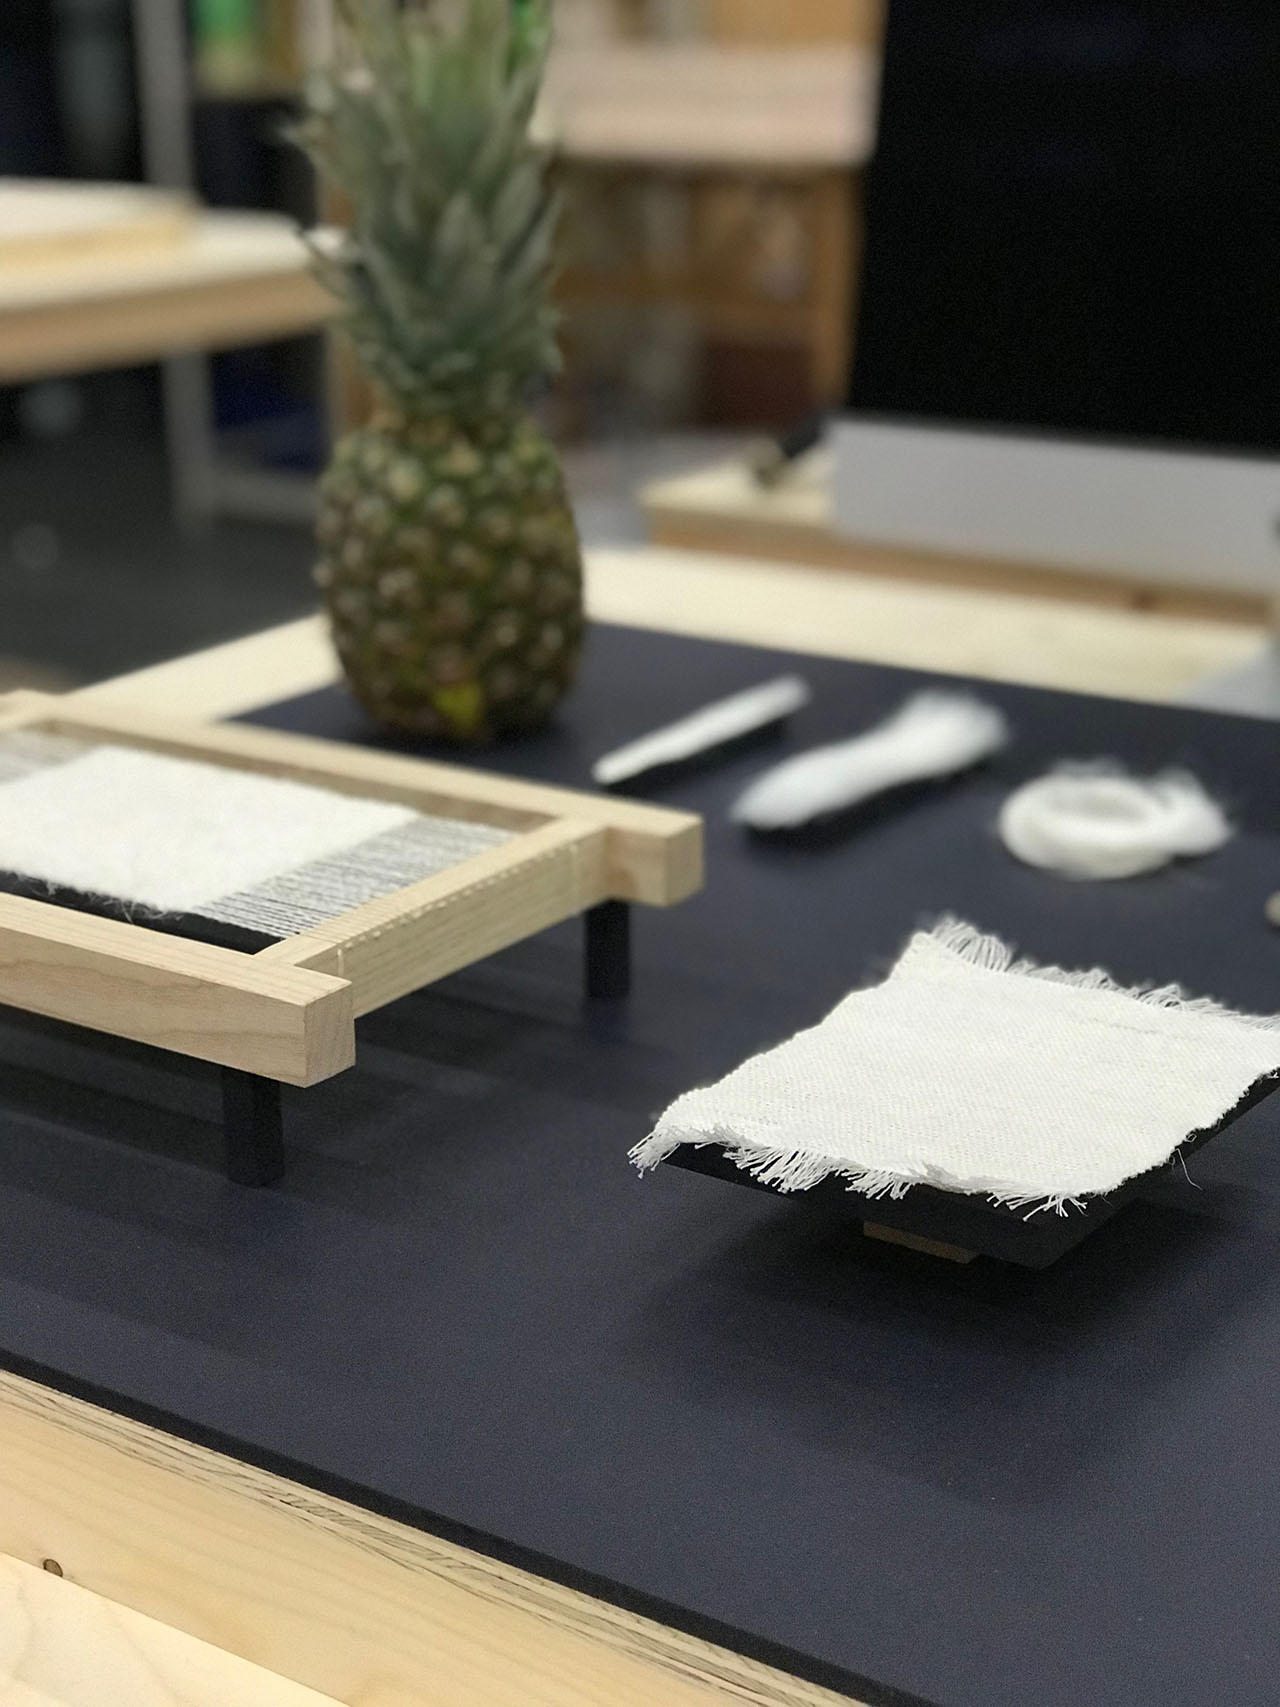 Pineapple Wool by Nathalie Spencer at  Material Futures exhibition (Based at Central Saint Martins, UAL, Material Futures is a two-year Masters course dedicated to exploring how we will live in the future through trans-disciplinary practice and collaboration).